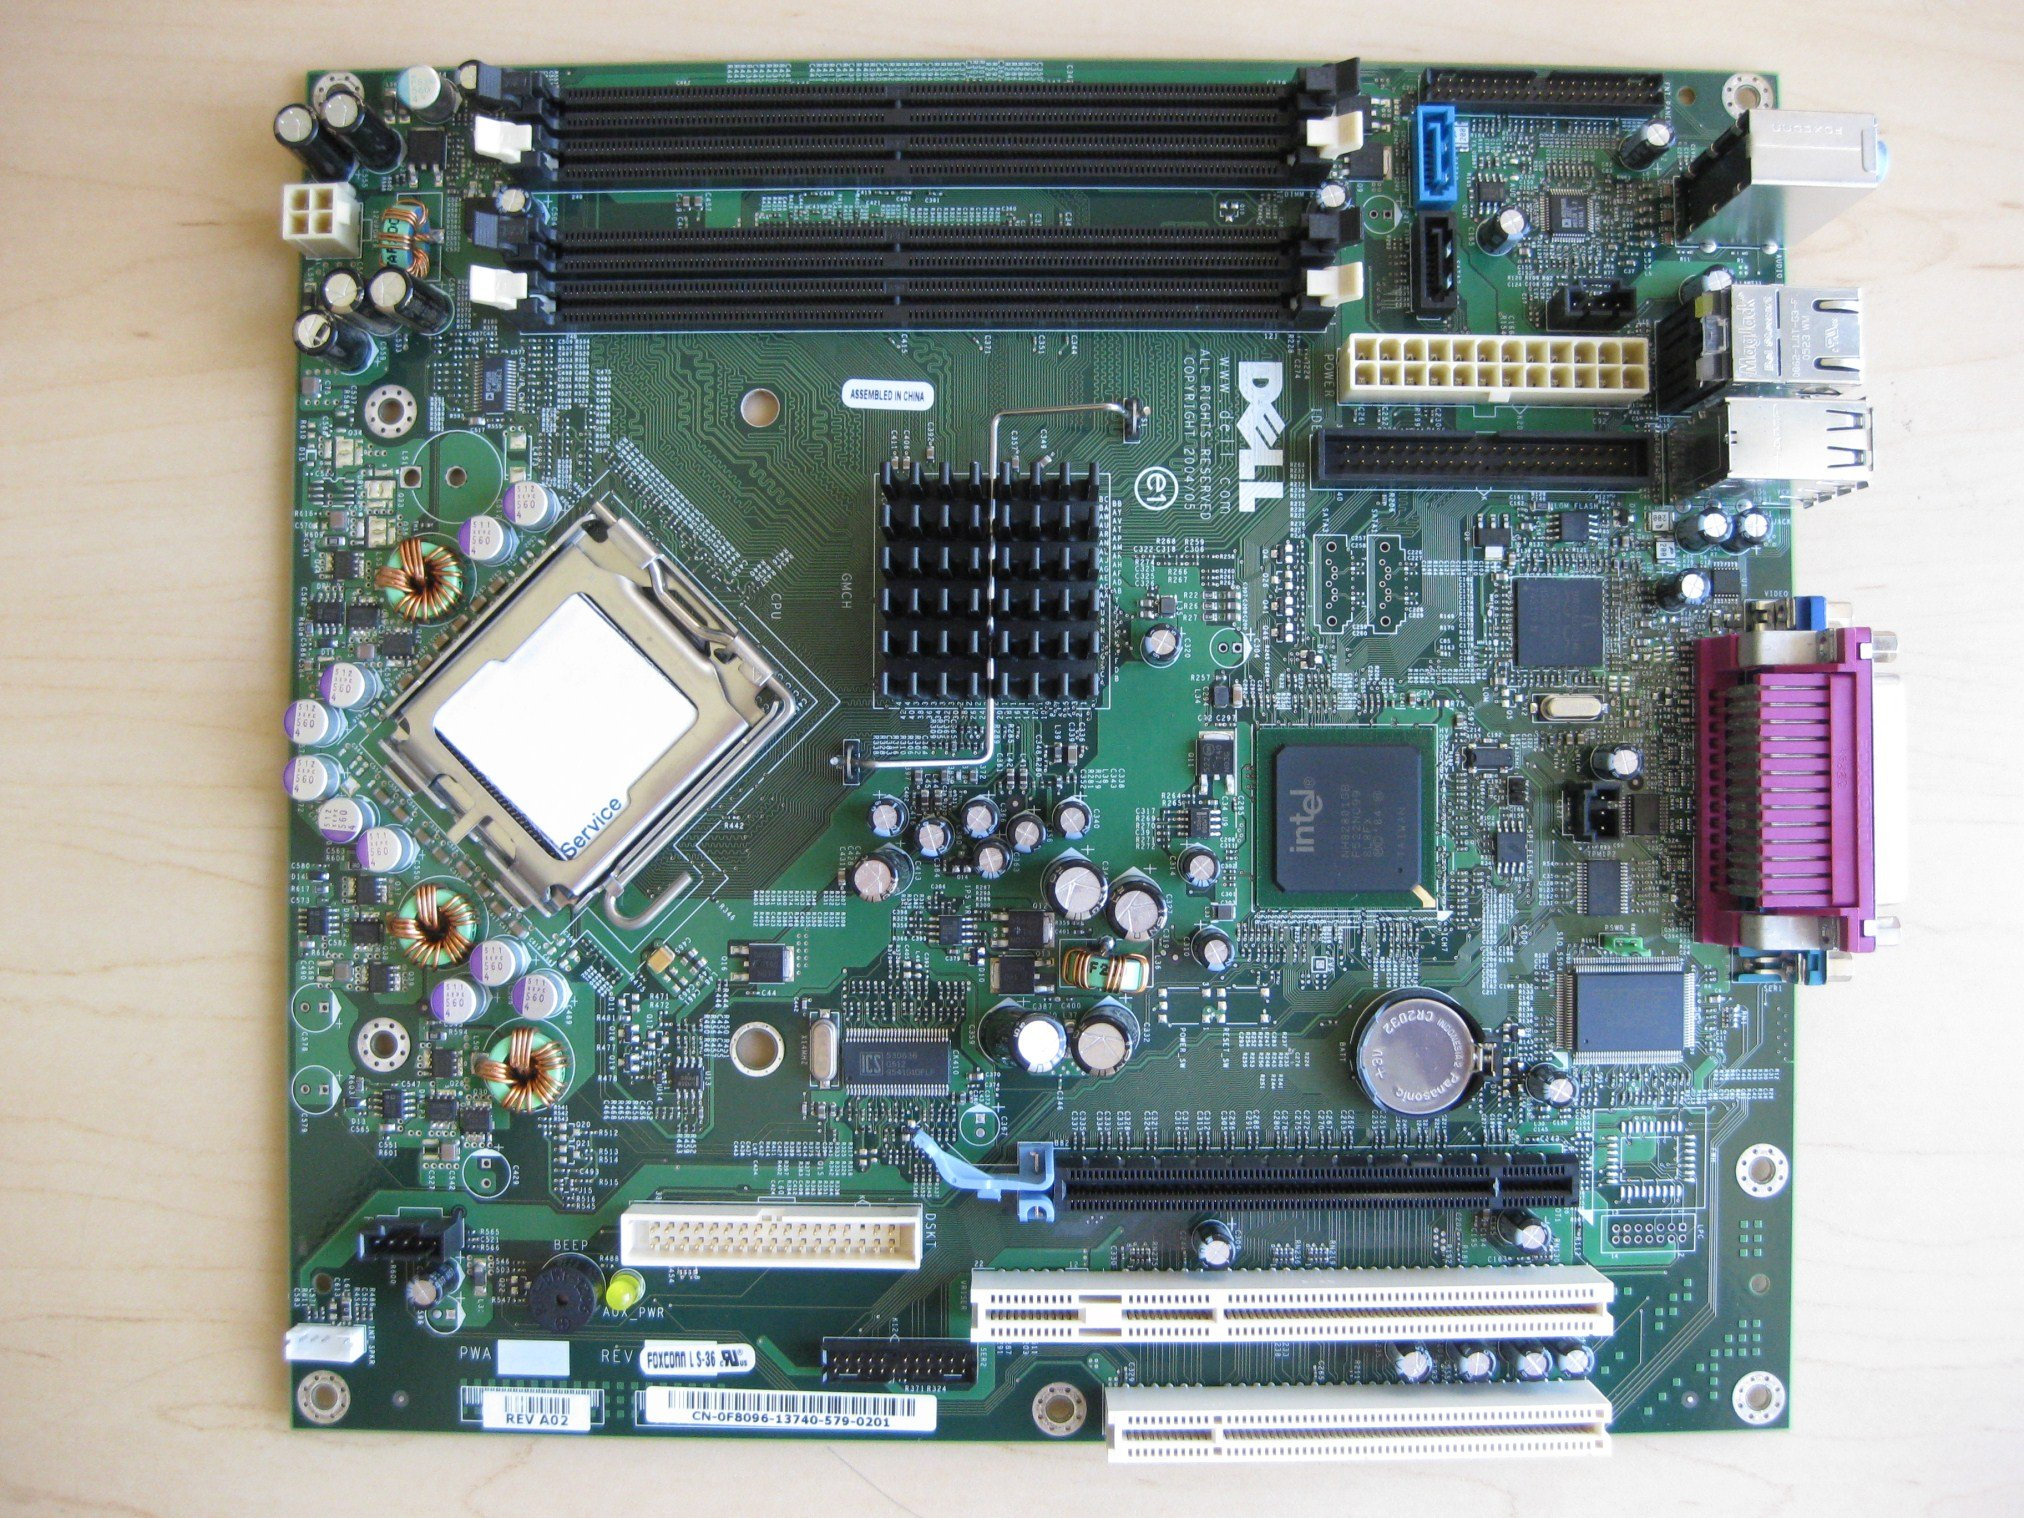 Genuine Dell FH884 ND237 F8096 GX620 Desktop DT Intel 945 Express LGA775 Socket 755 System Computer Logic Main System Board Compatible Part Numbers: ND237, F8096, FH884, HJ781 , X9681, CJ335